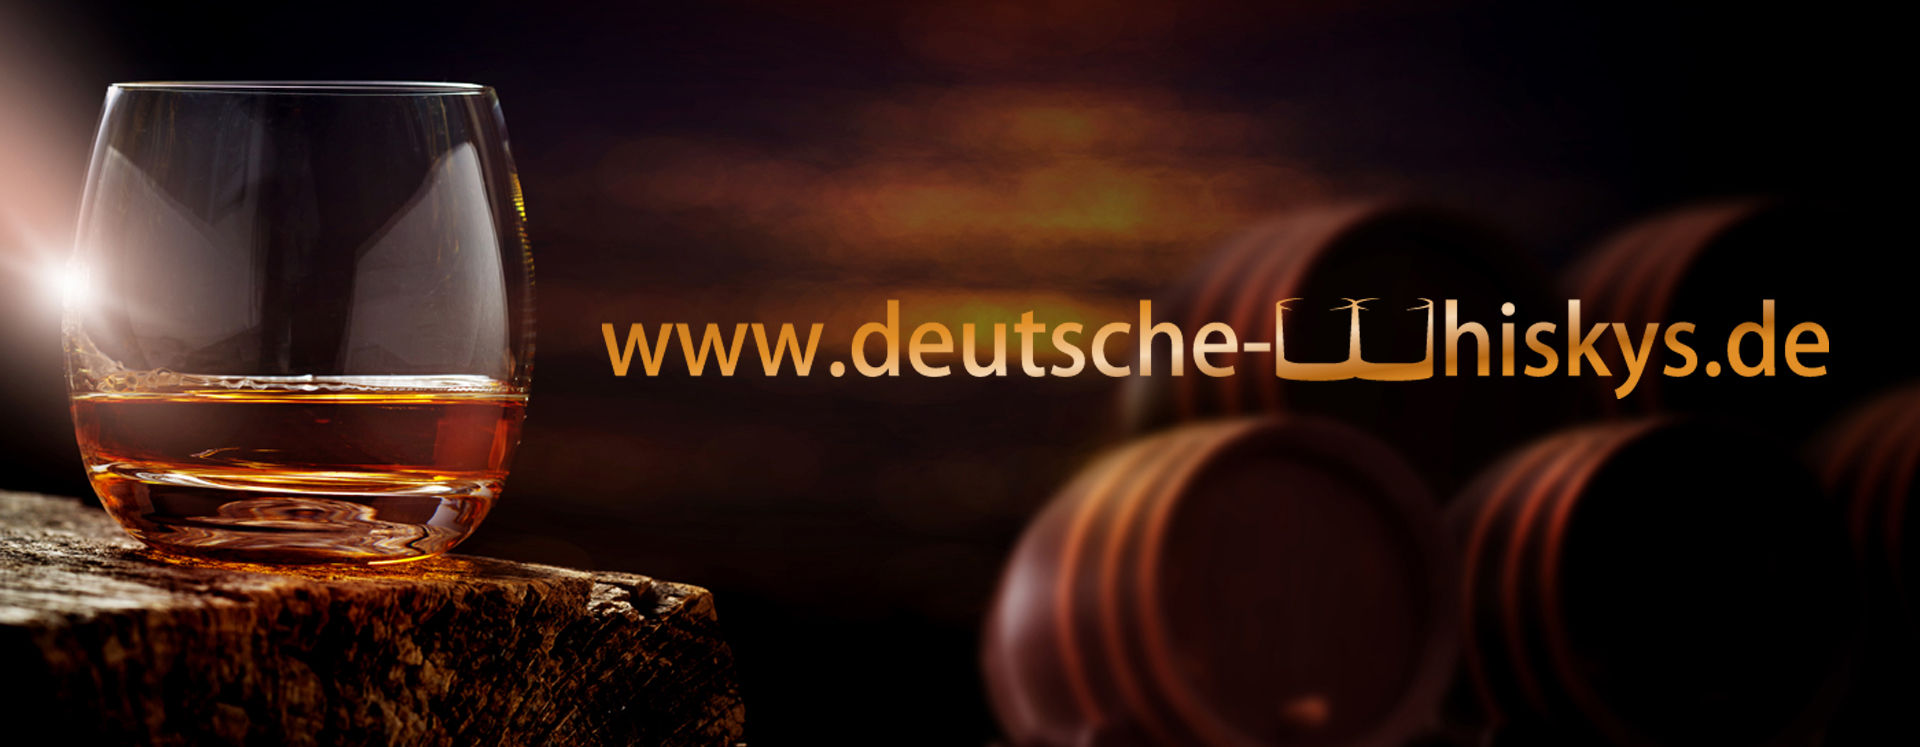 www.deutsche-whiskys.de